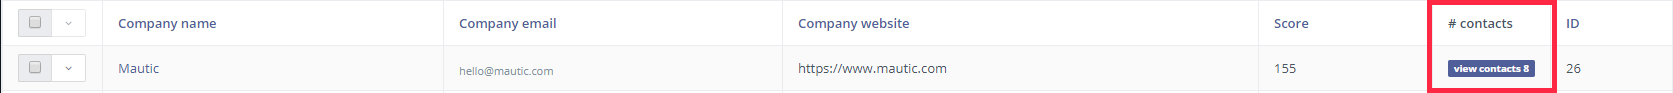 Companies - View Contacts